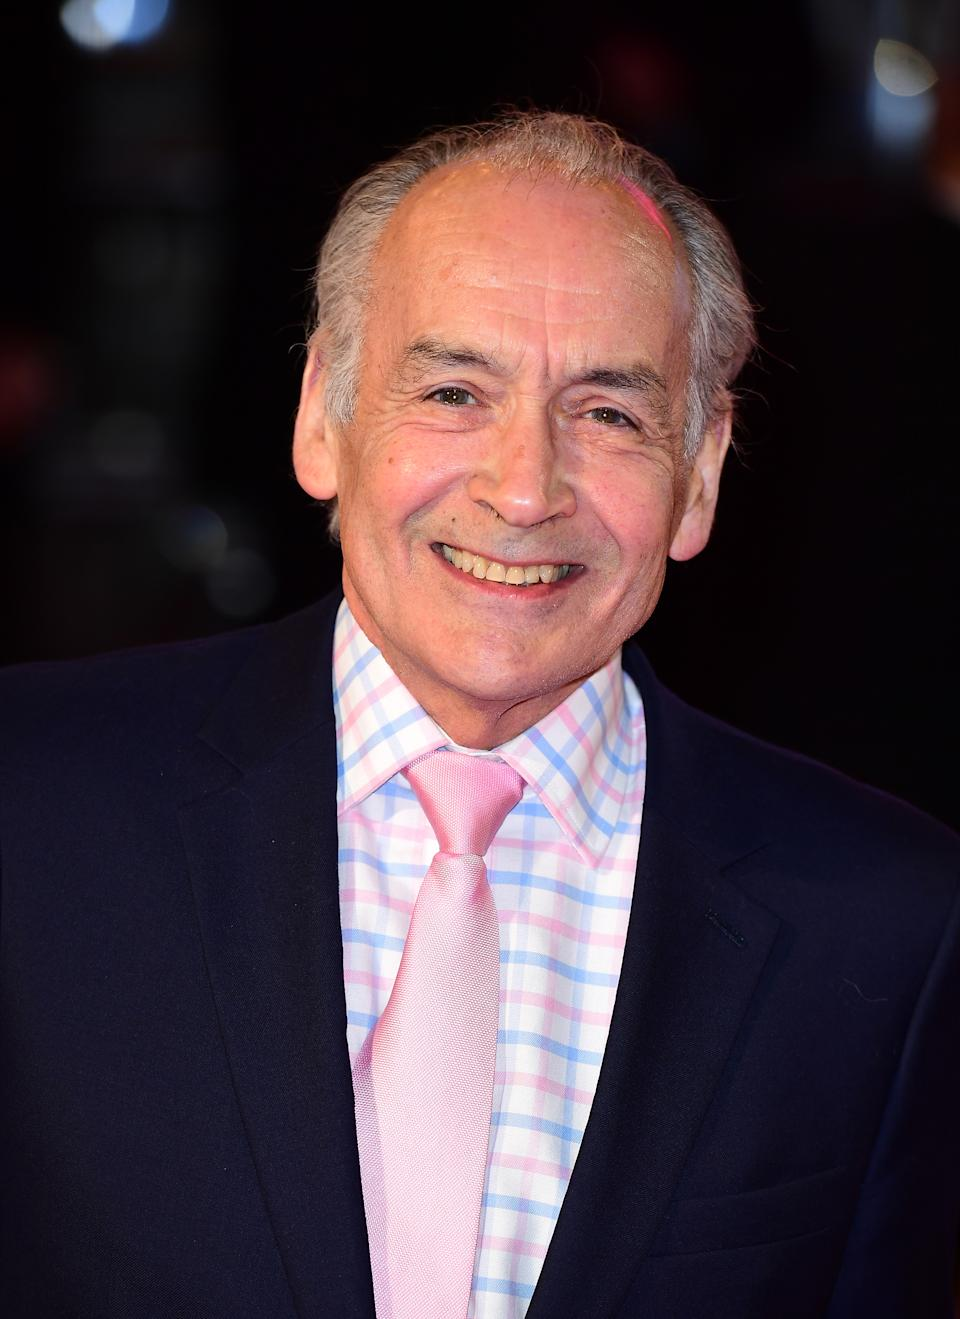 Alastair Stewart attending the ITV Gala at the London Palladium. PRESS ASSOCIATION Photo. Picture date: Thursday November 24, 2016. See PA story SHOWBIZ Gala. Photo credit should read: Ian West/PA Wire